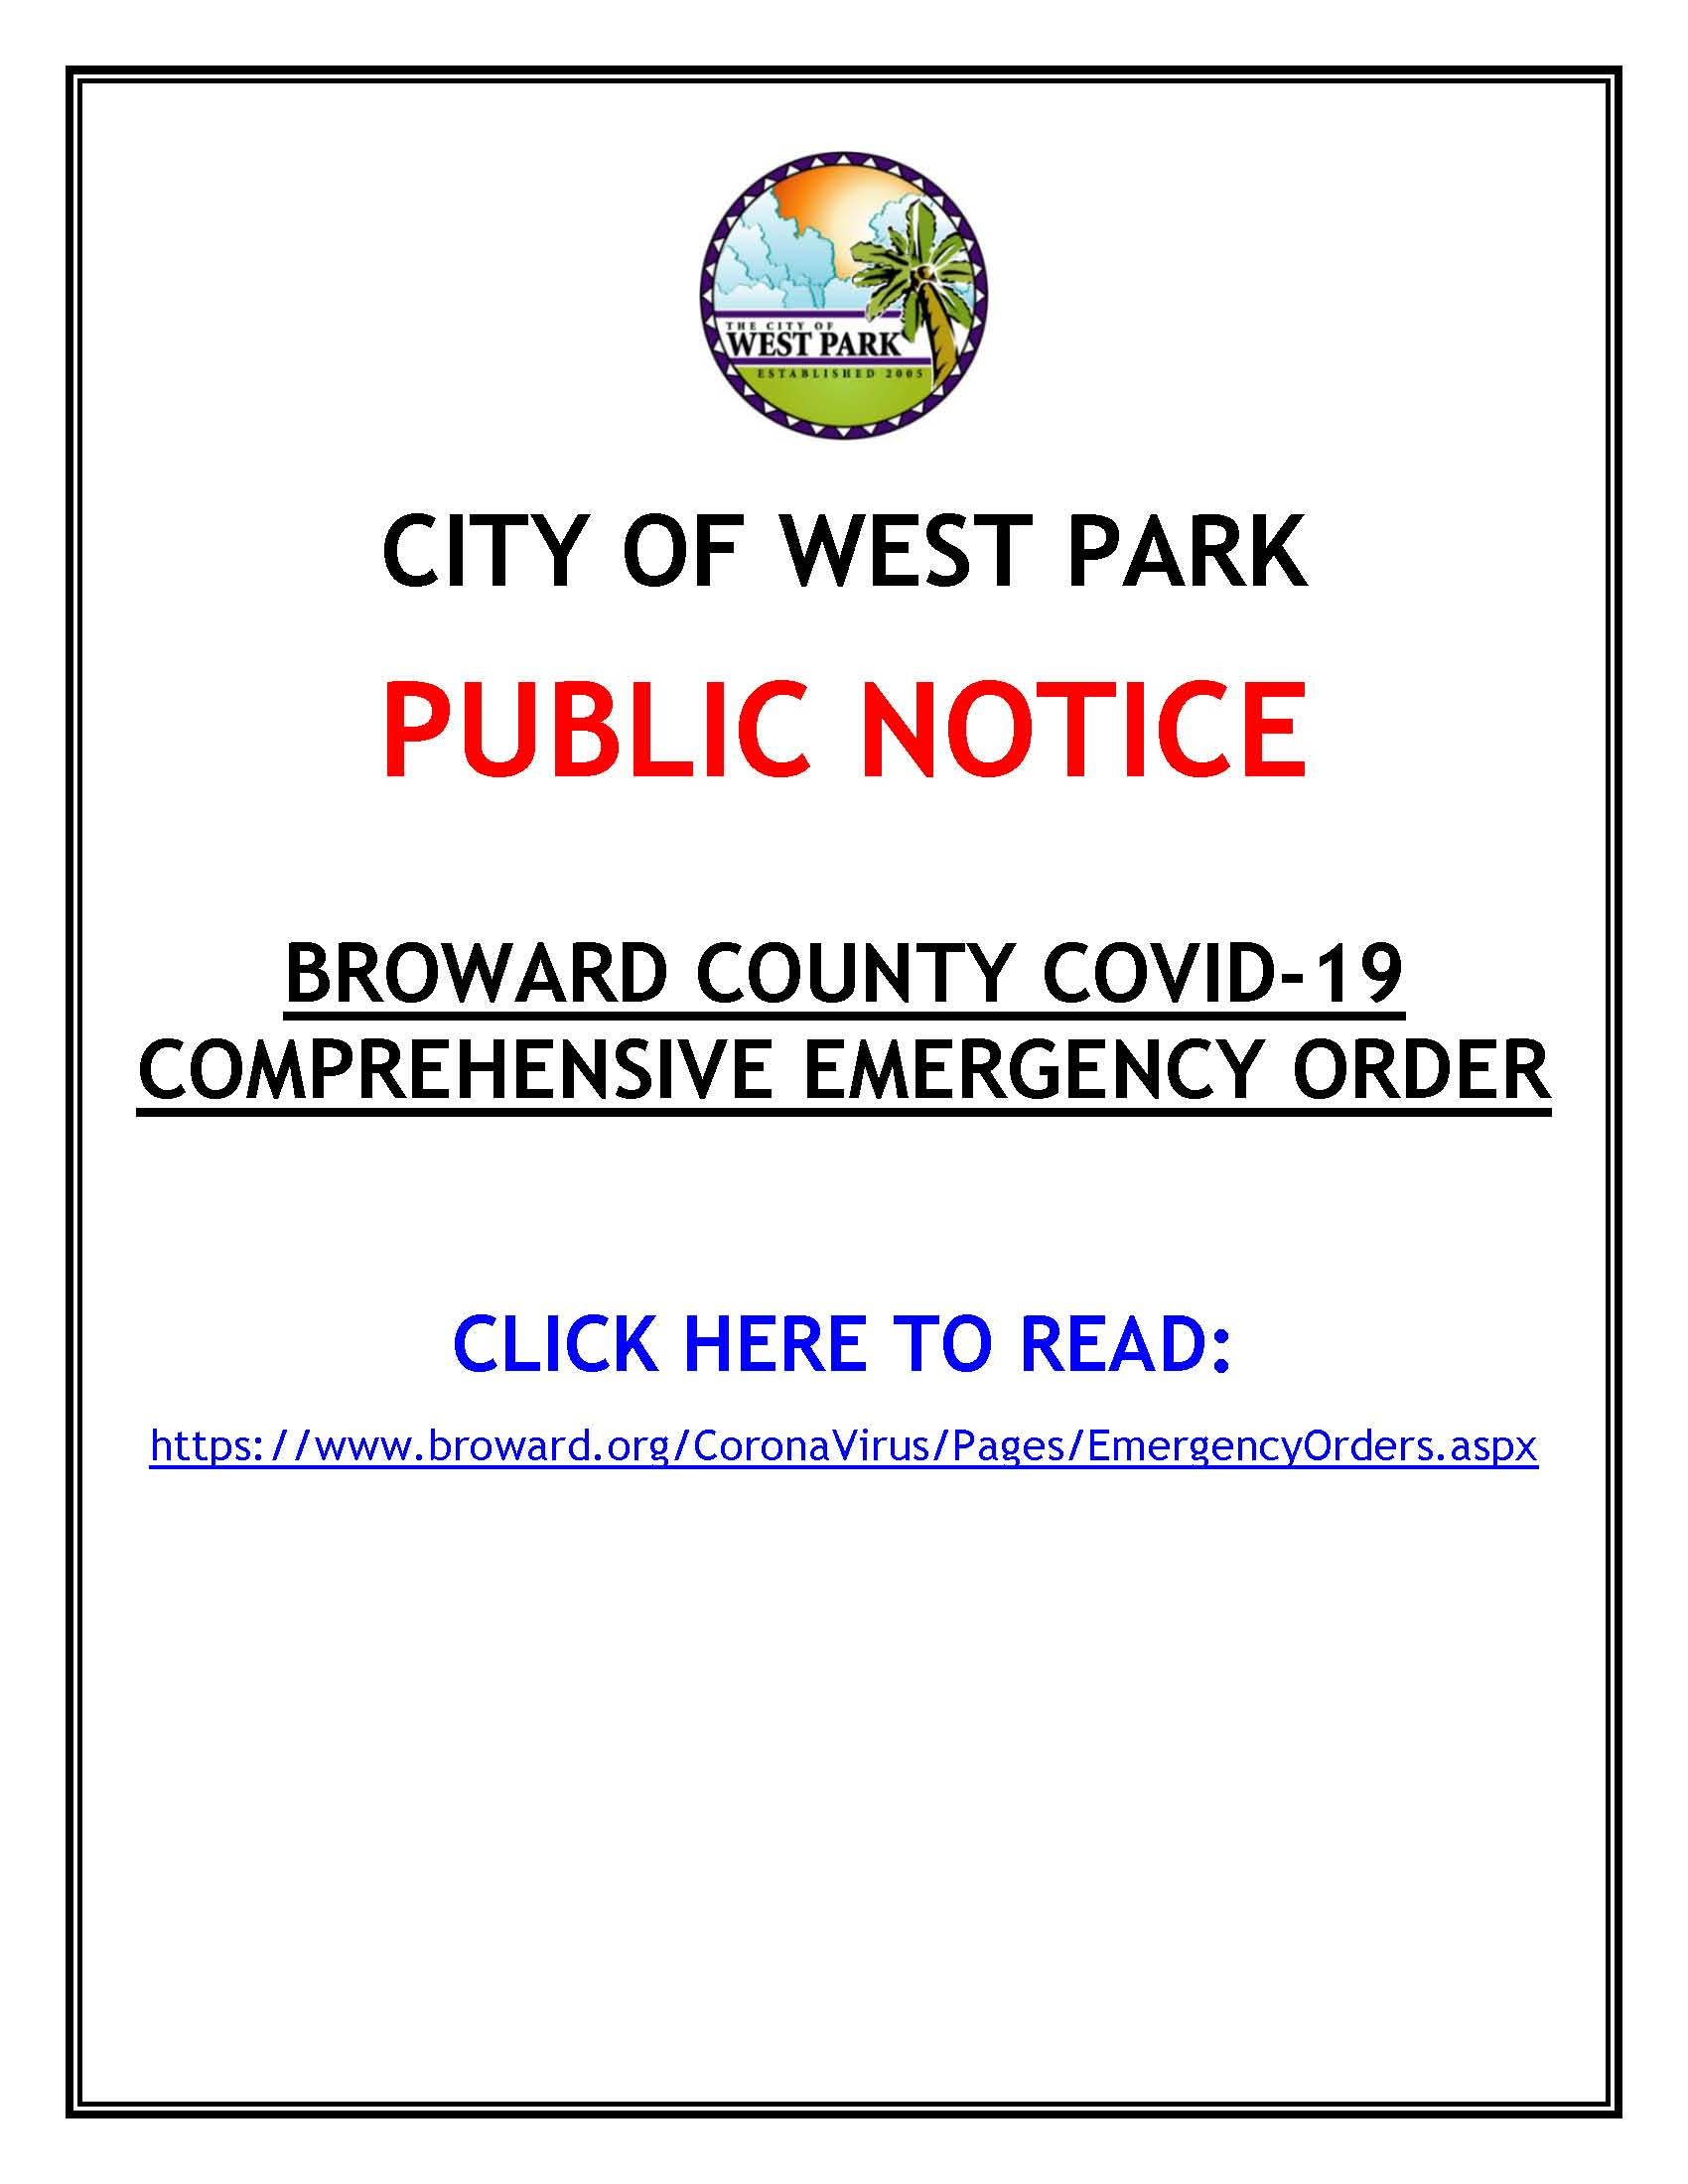 PUBLIC NOTICE - BROWARD COUNTY EMERGENCY ORDER - 12-29-20.pdf